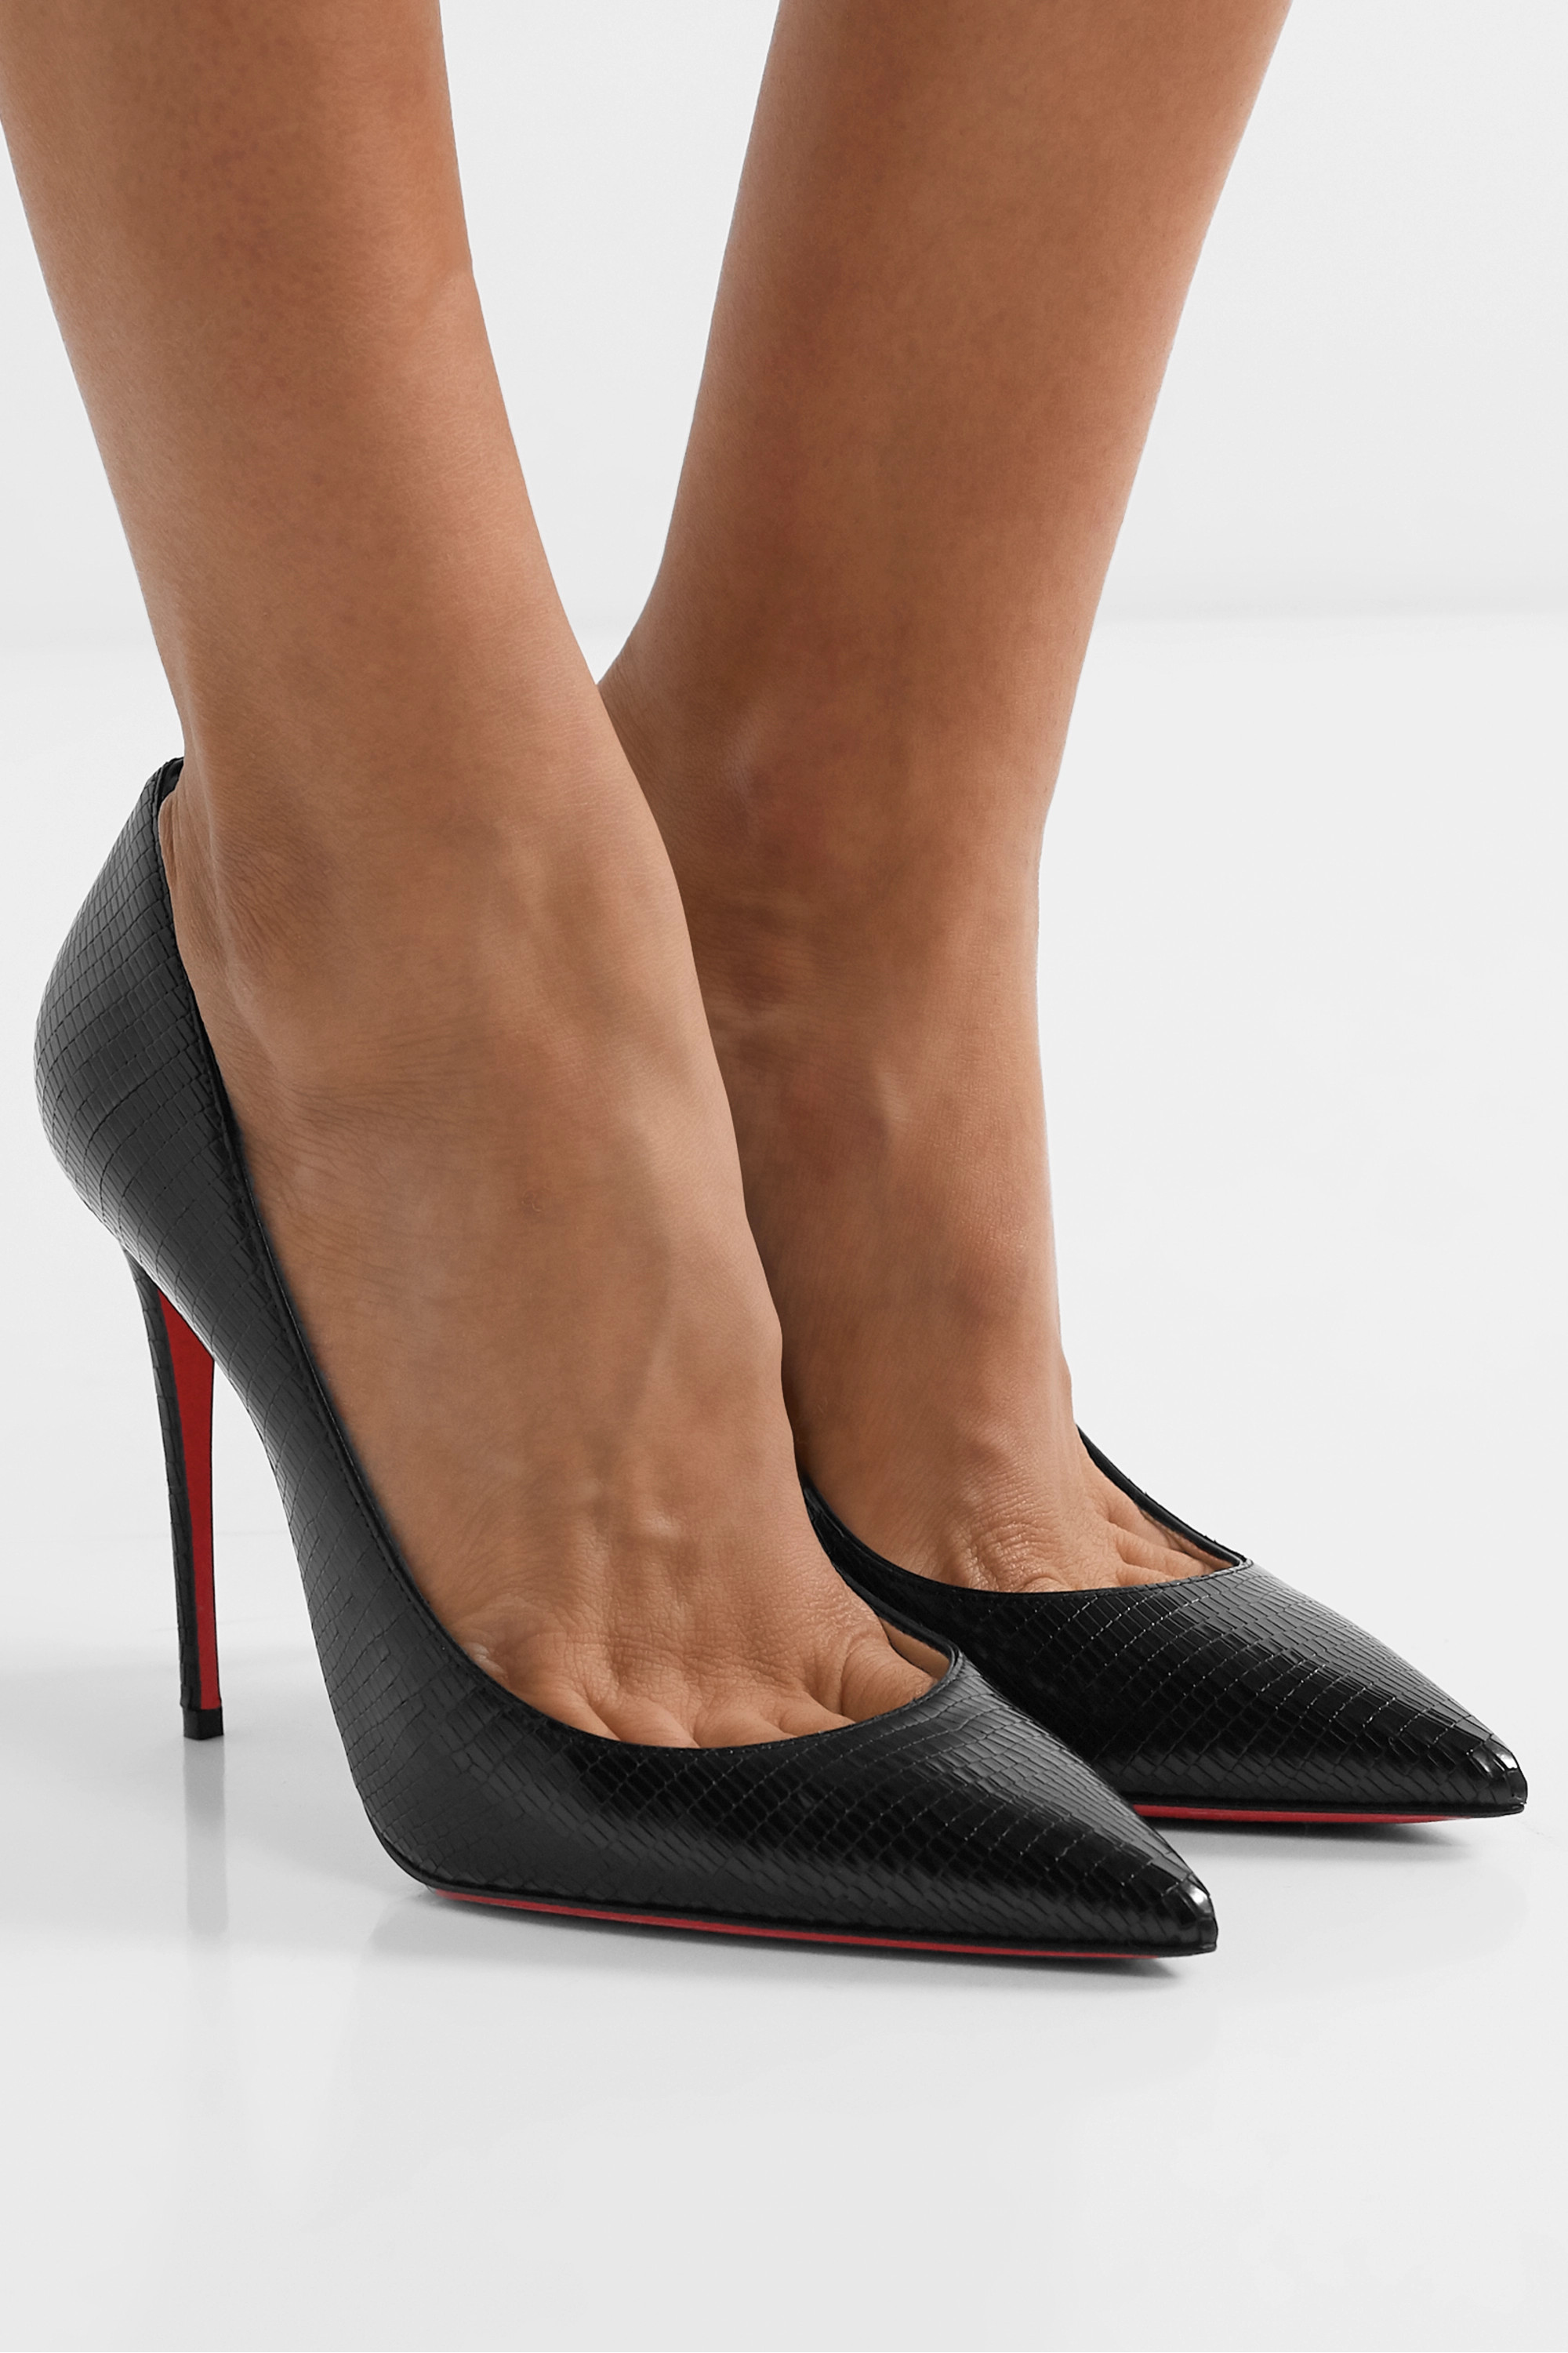 Christian Louboutin Kate 100 lizard-effect leather pumps